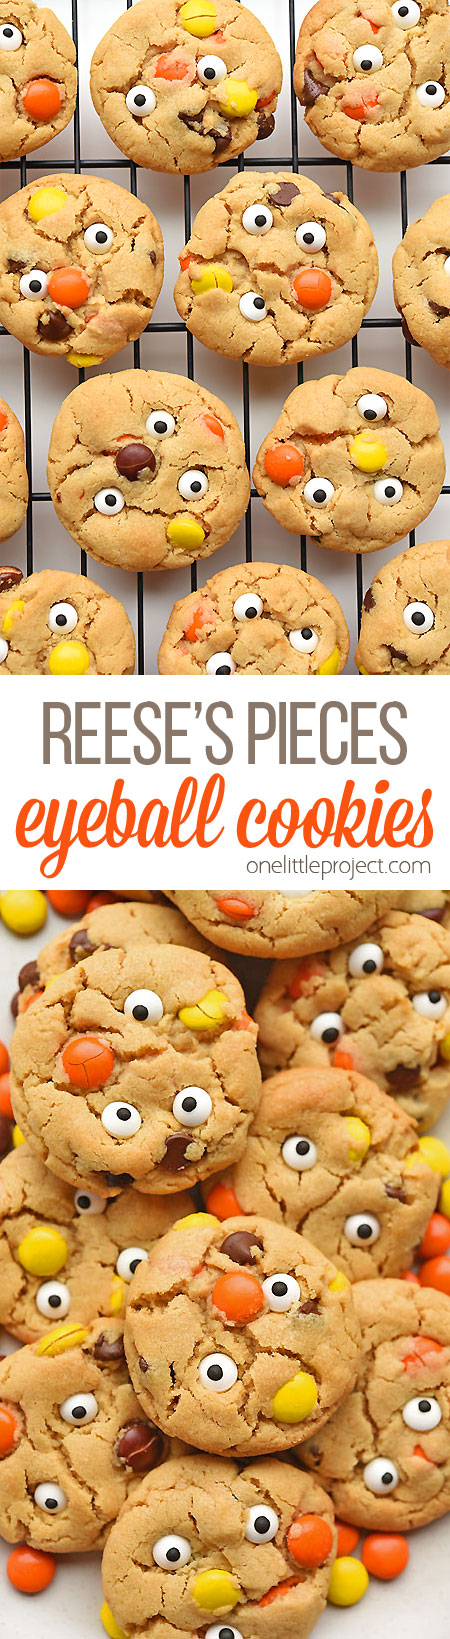 These Reese's Pieces peanut butter eyeball cookies are so much fun! And they taste SO GOOD! The cookies are soft, chewy and delicious! These little monster cookies are such a fun treat to bake for Halloween!